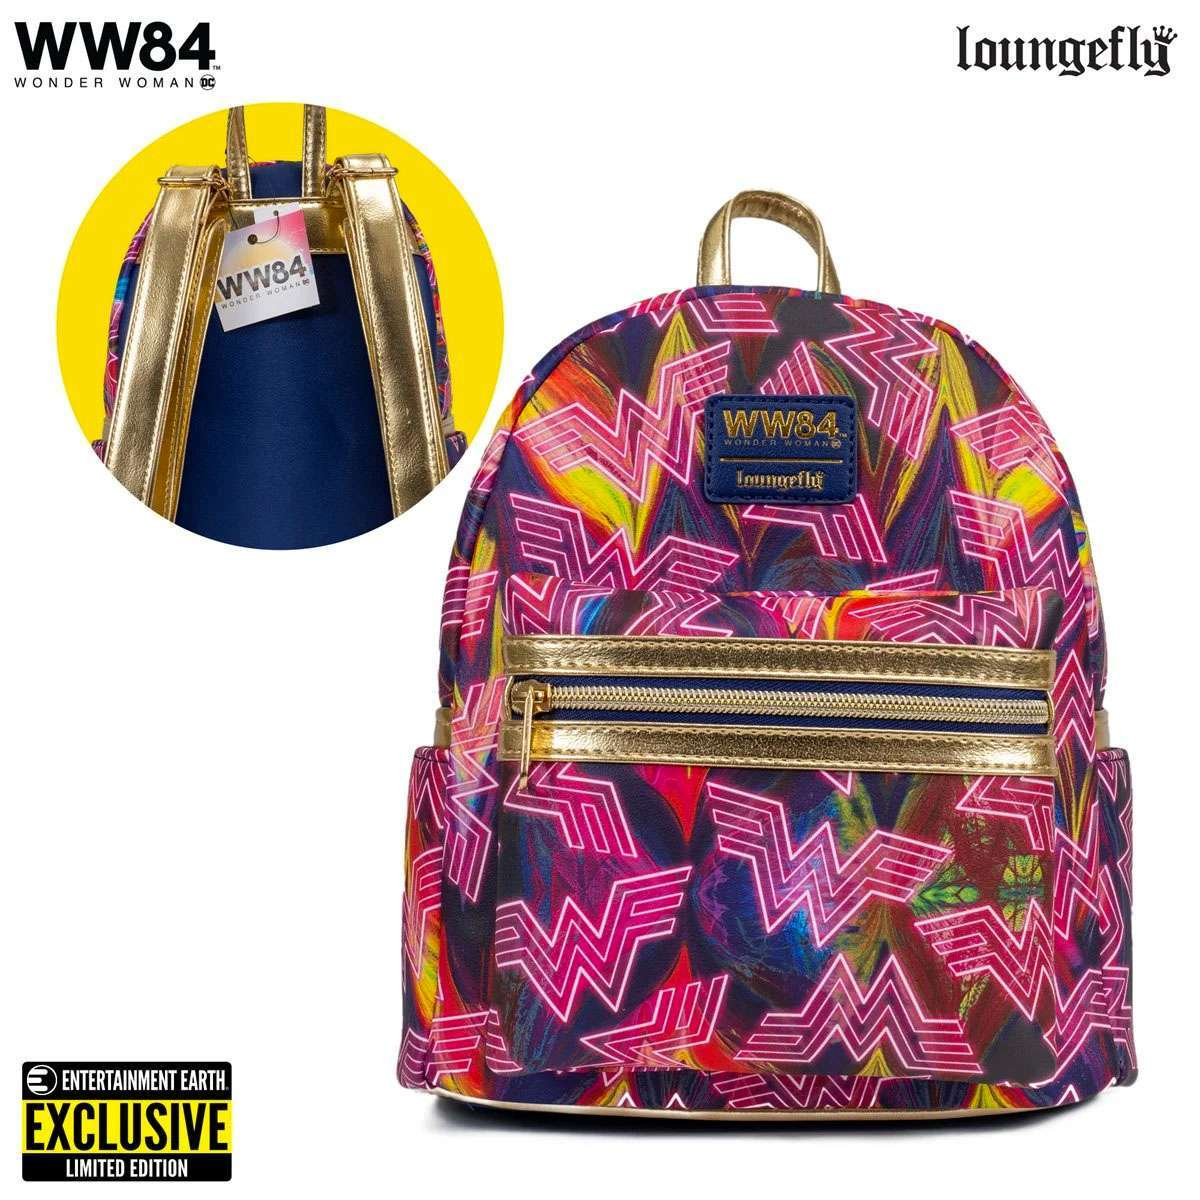 Wonder Woman 1984's Rad Loungefly Mini Backpack SDCC Exclusive is Live